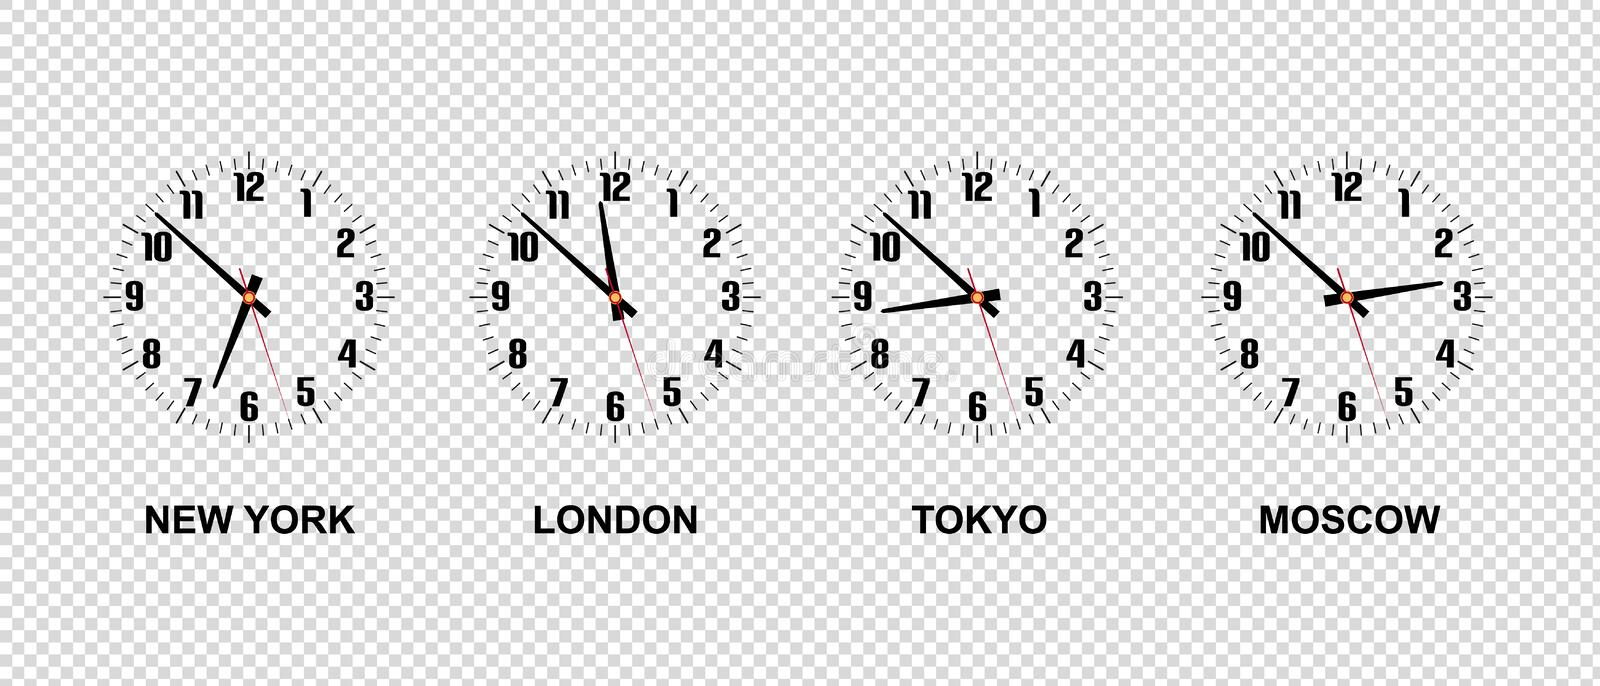 Different Time Zones - New York, London, Tokyo, Moscow - Vector Illustration - Isolated On Transparent Background stock illustration